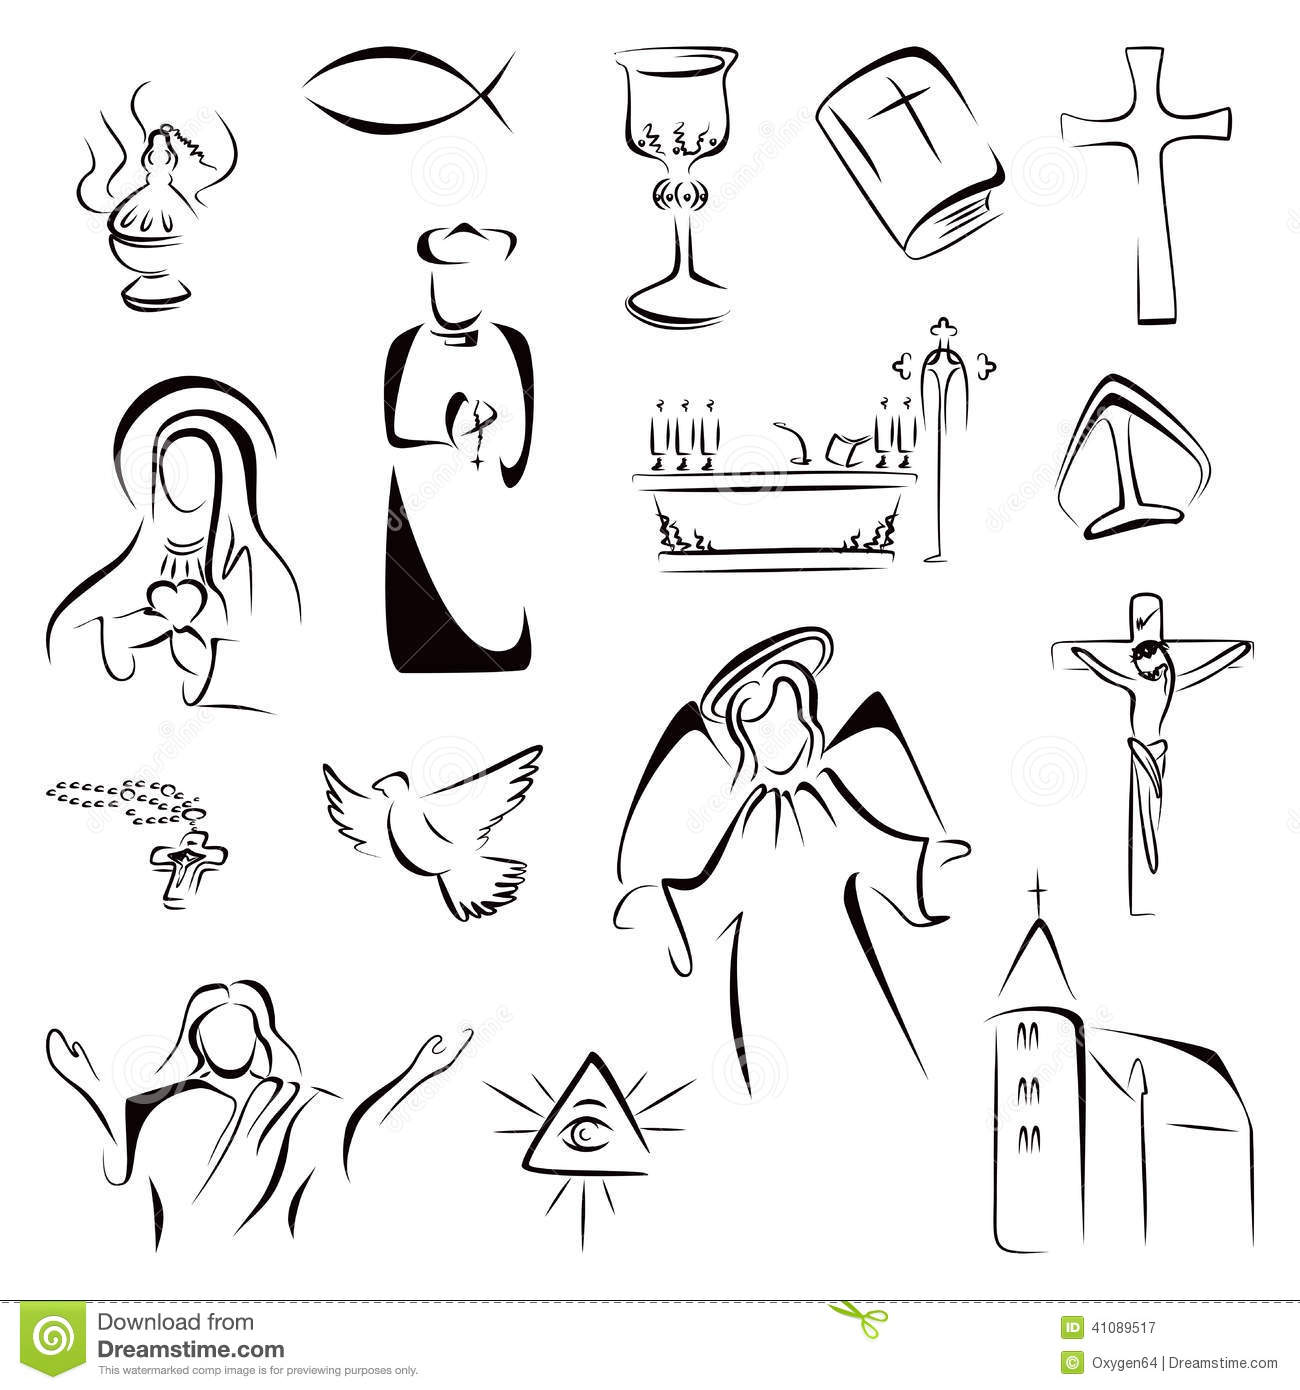 Ancient christian symbols and their meanings freemason symbols the meanings of freemasonrys masonic buycottarizona